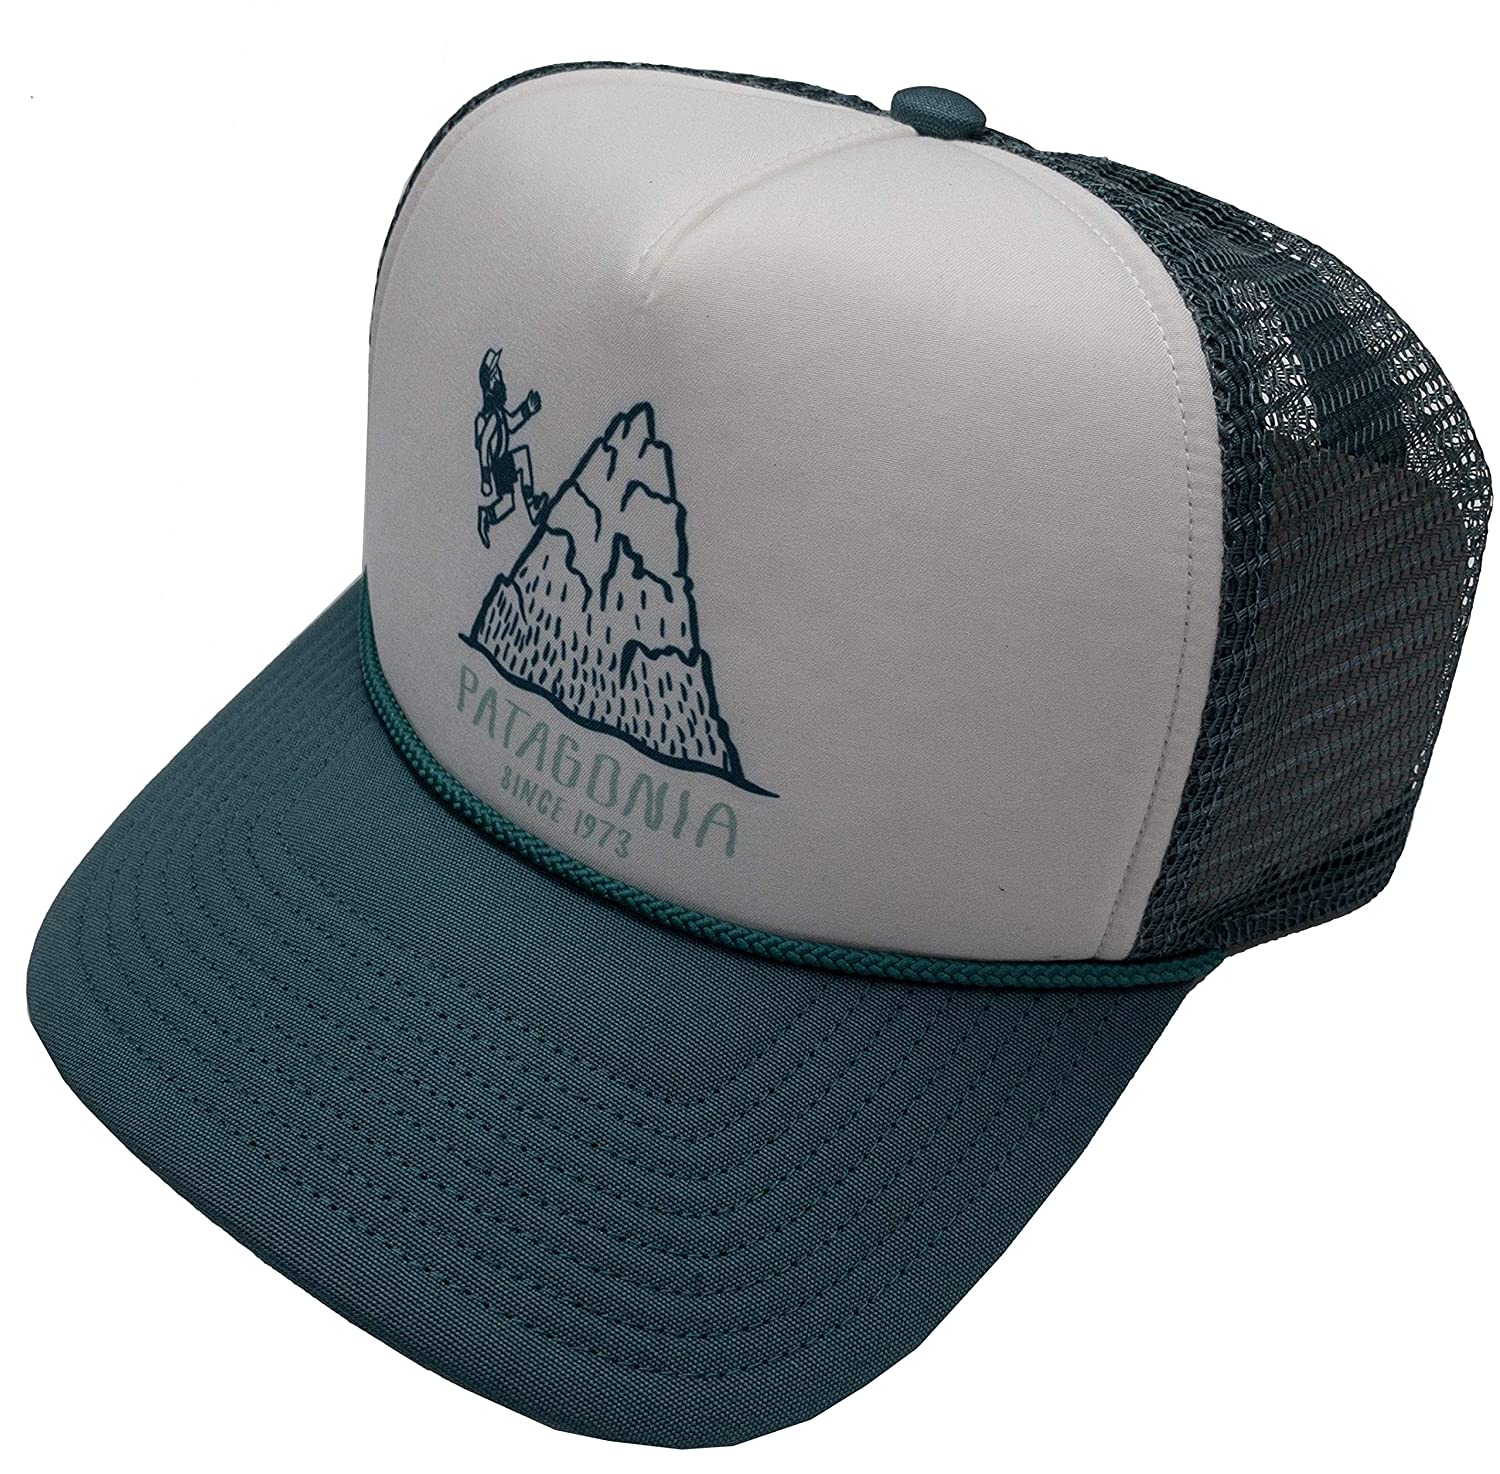 Patagonia Adult Mesh Adjustable Snapback Trucker Cap Hat (Teal ...